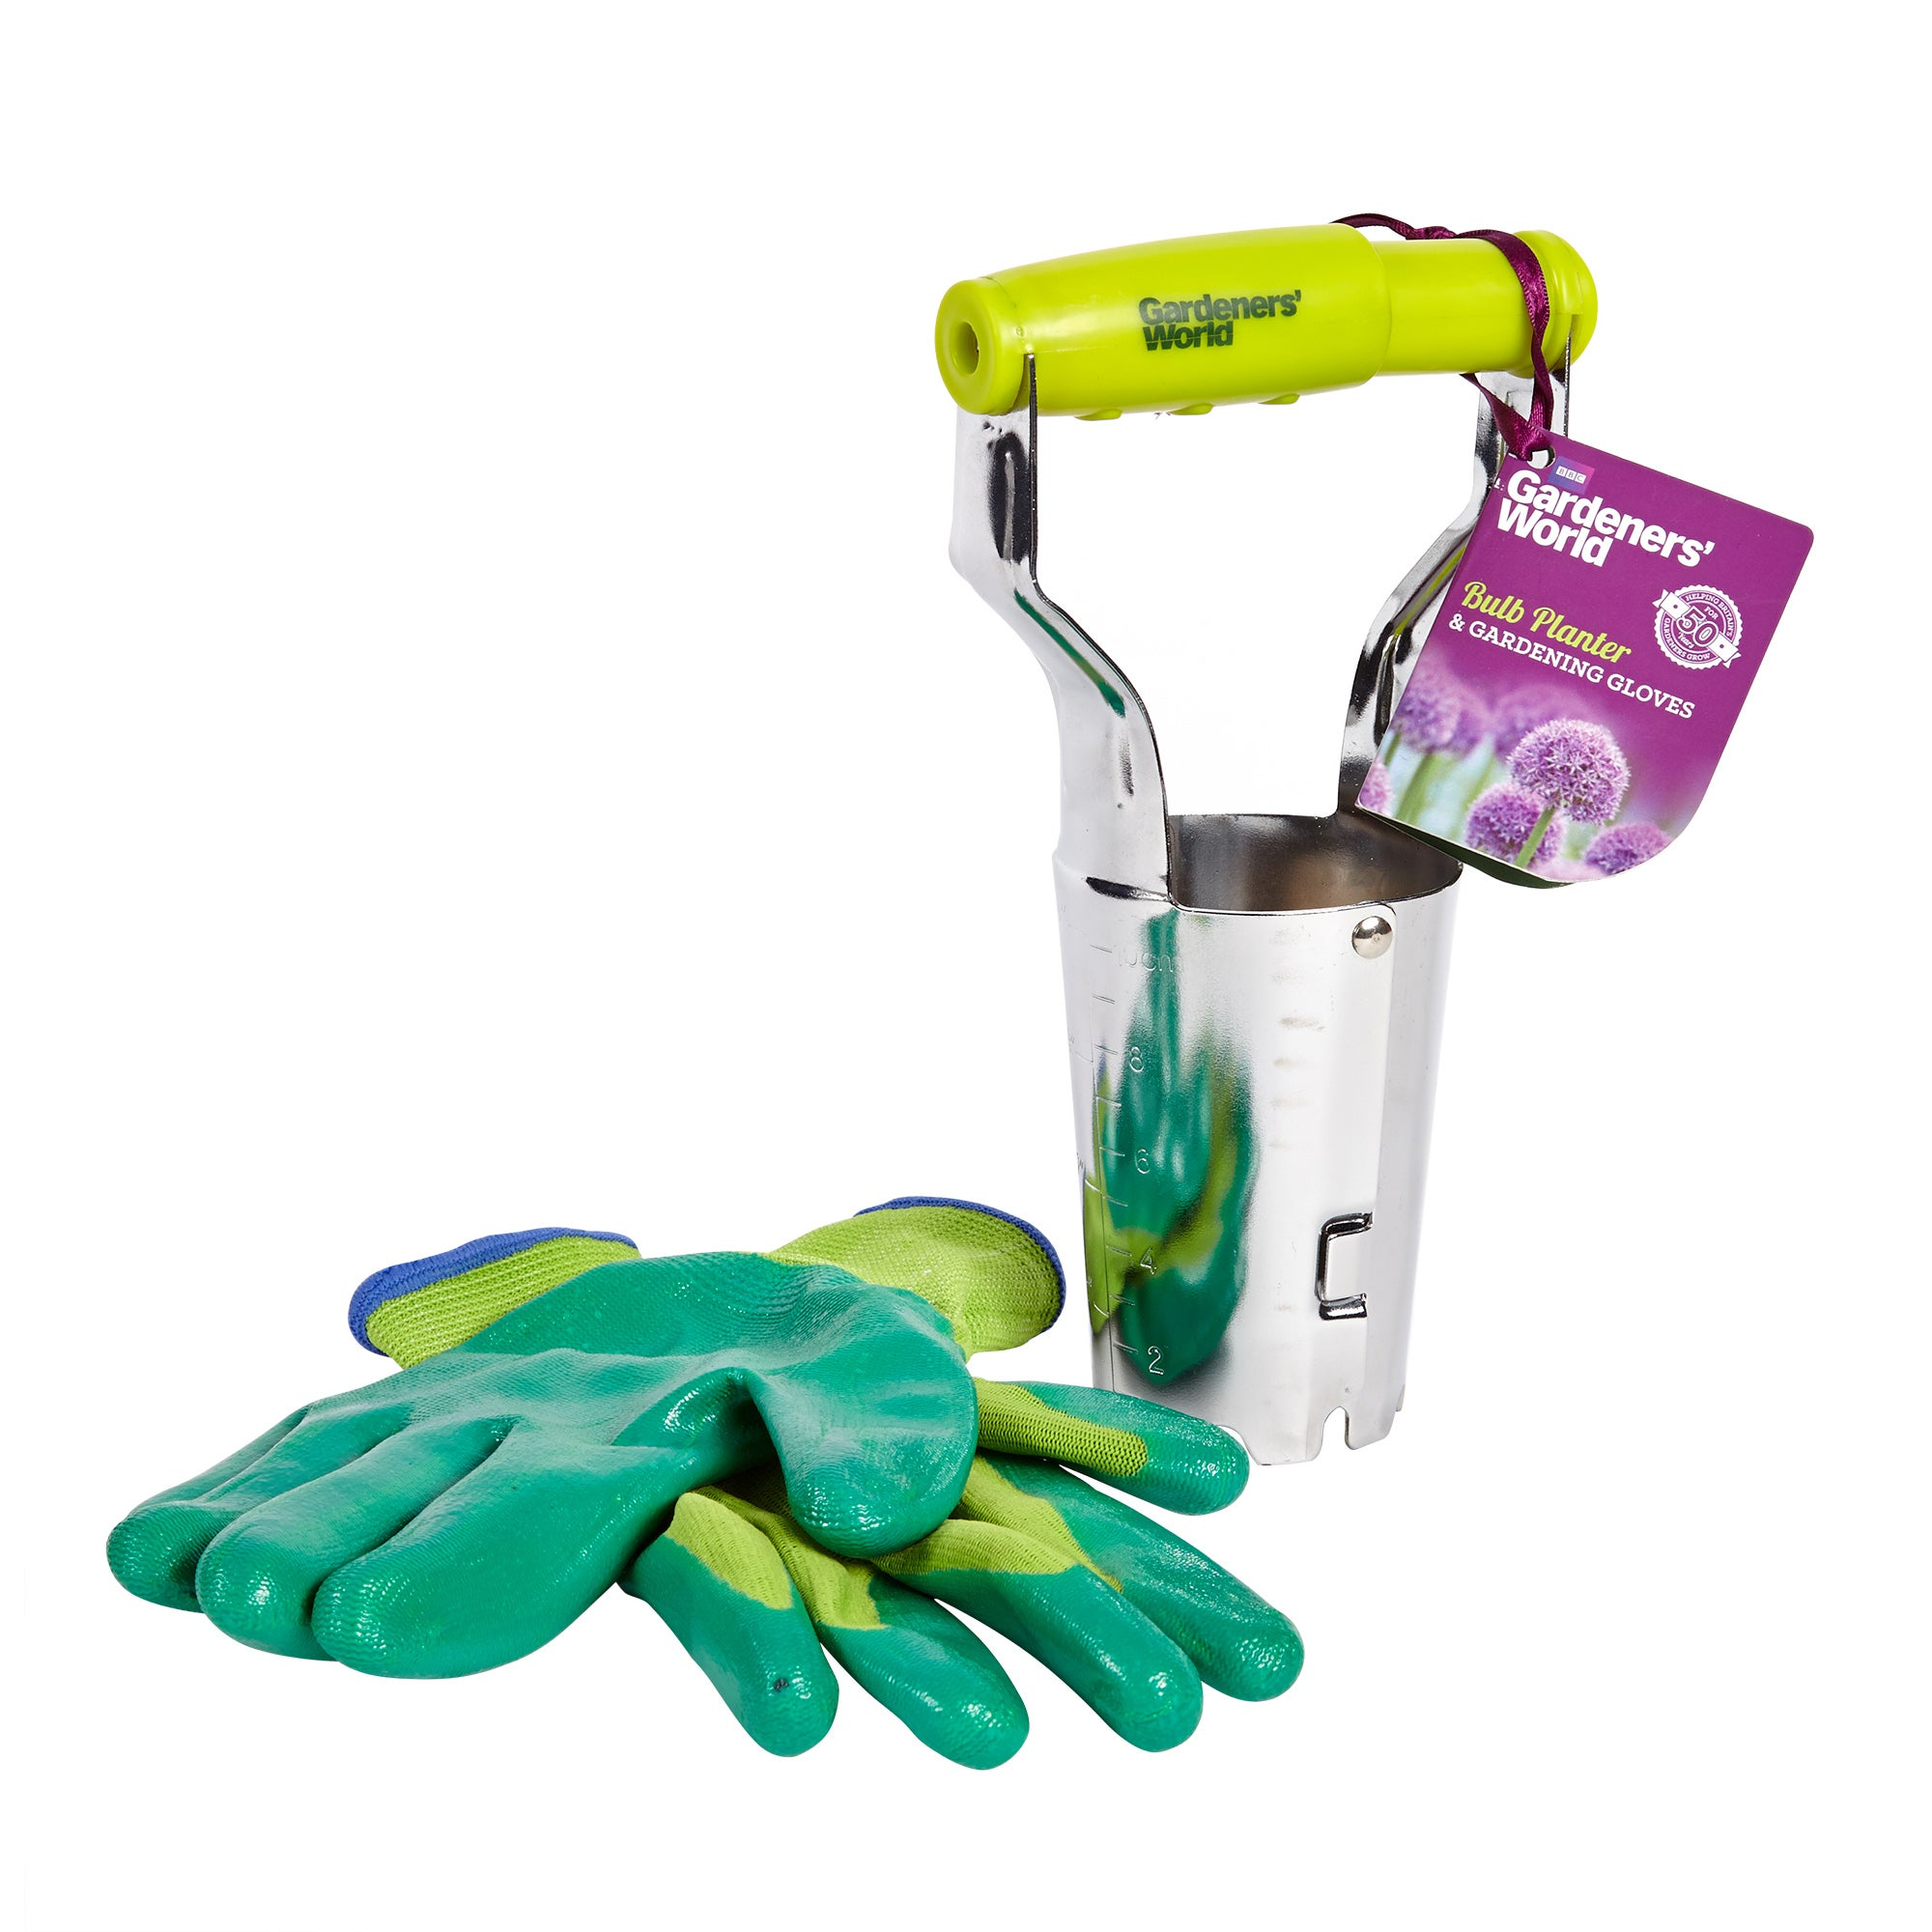 Image of BBC Gardeners' World Bulb Planter & Gardening Gloves Green